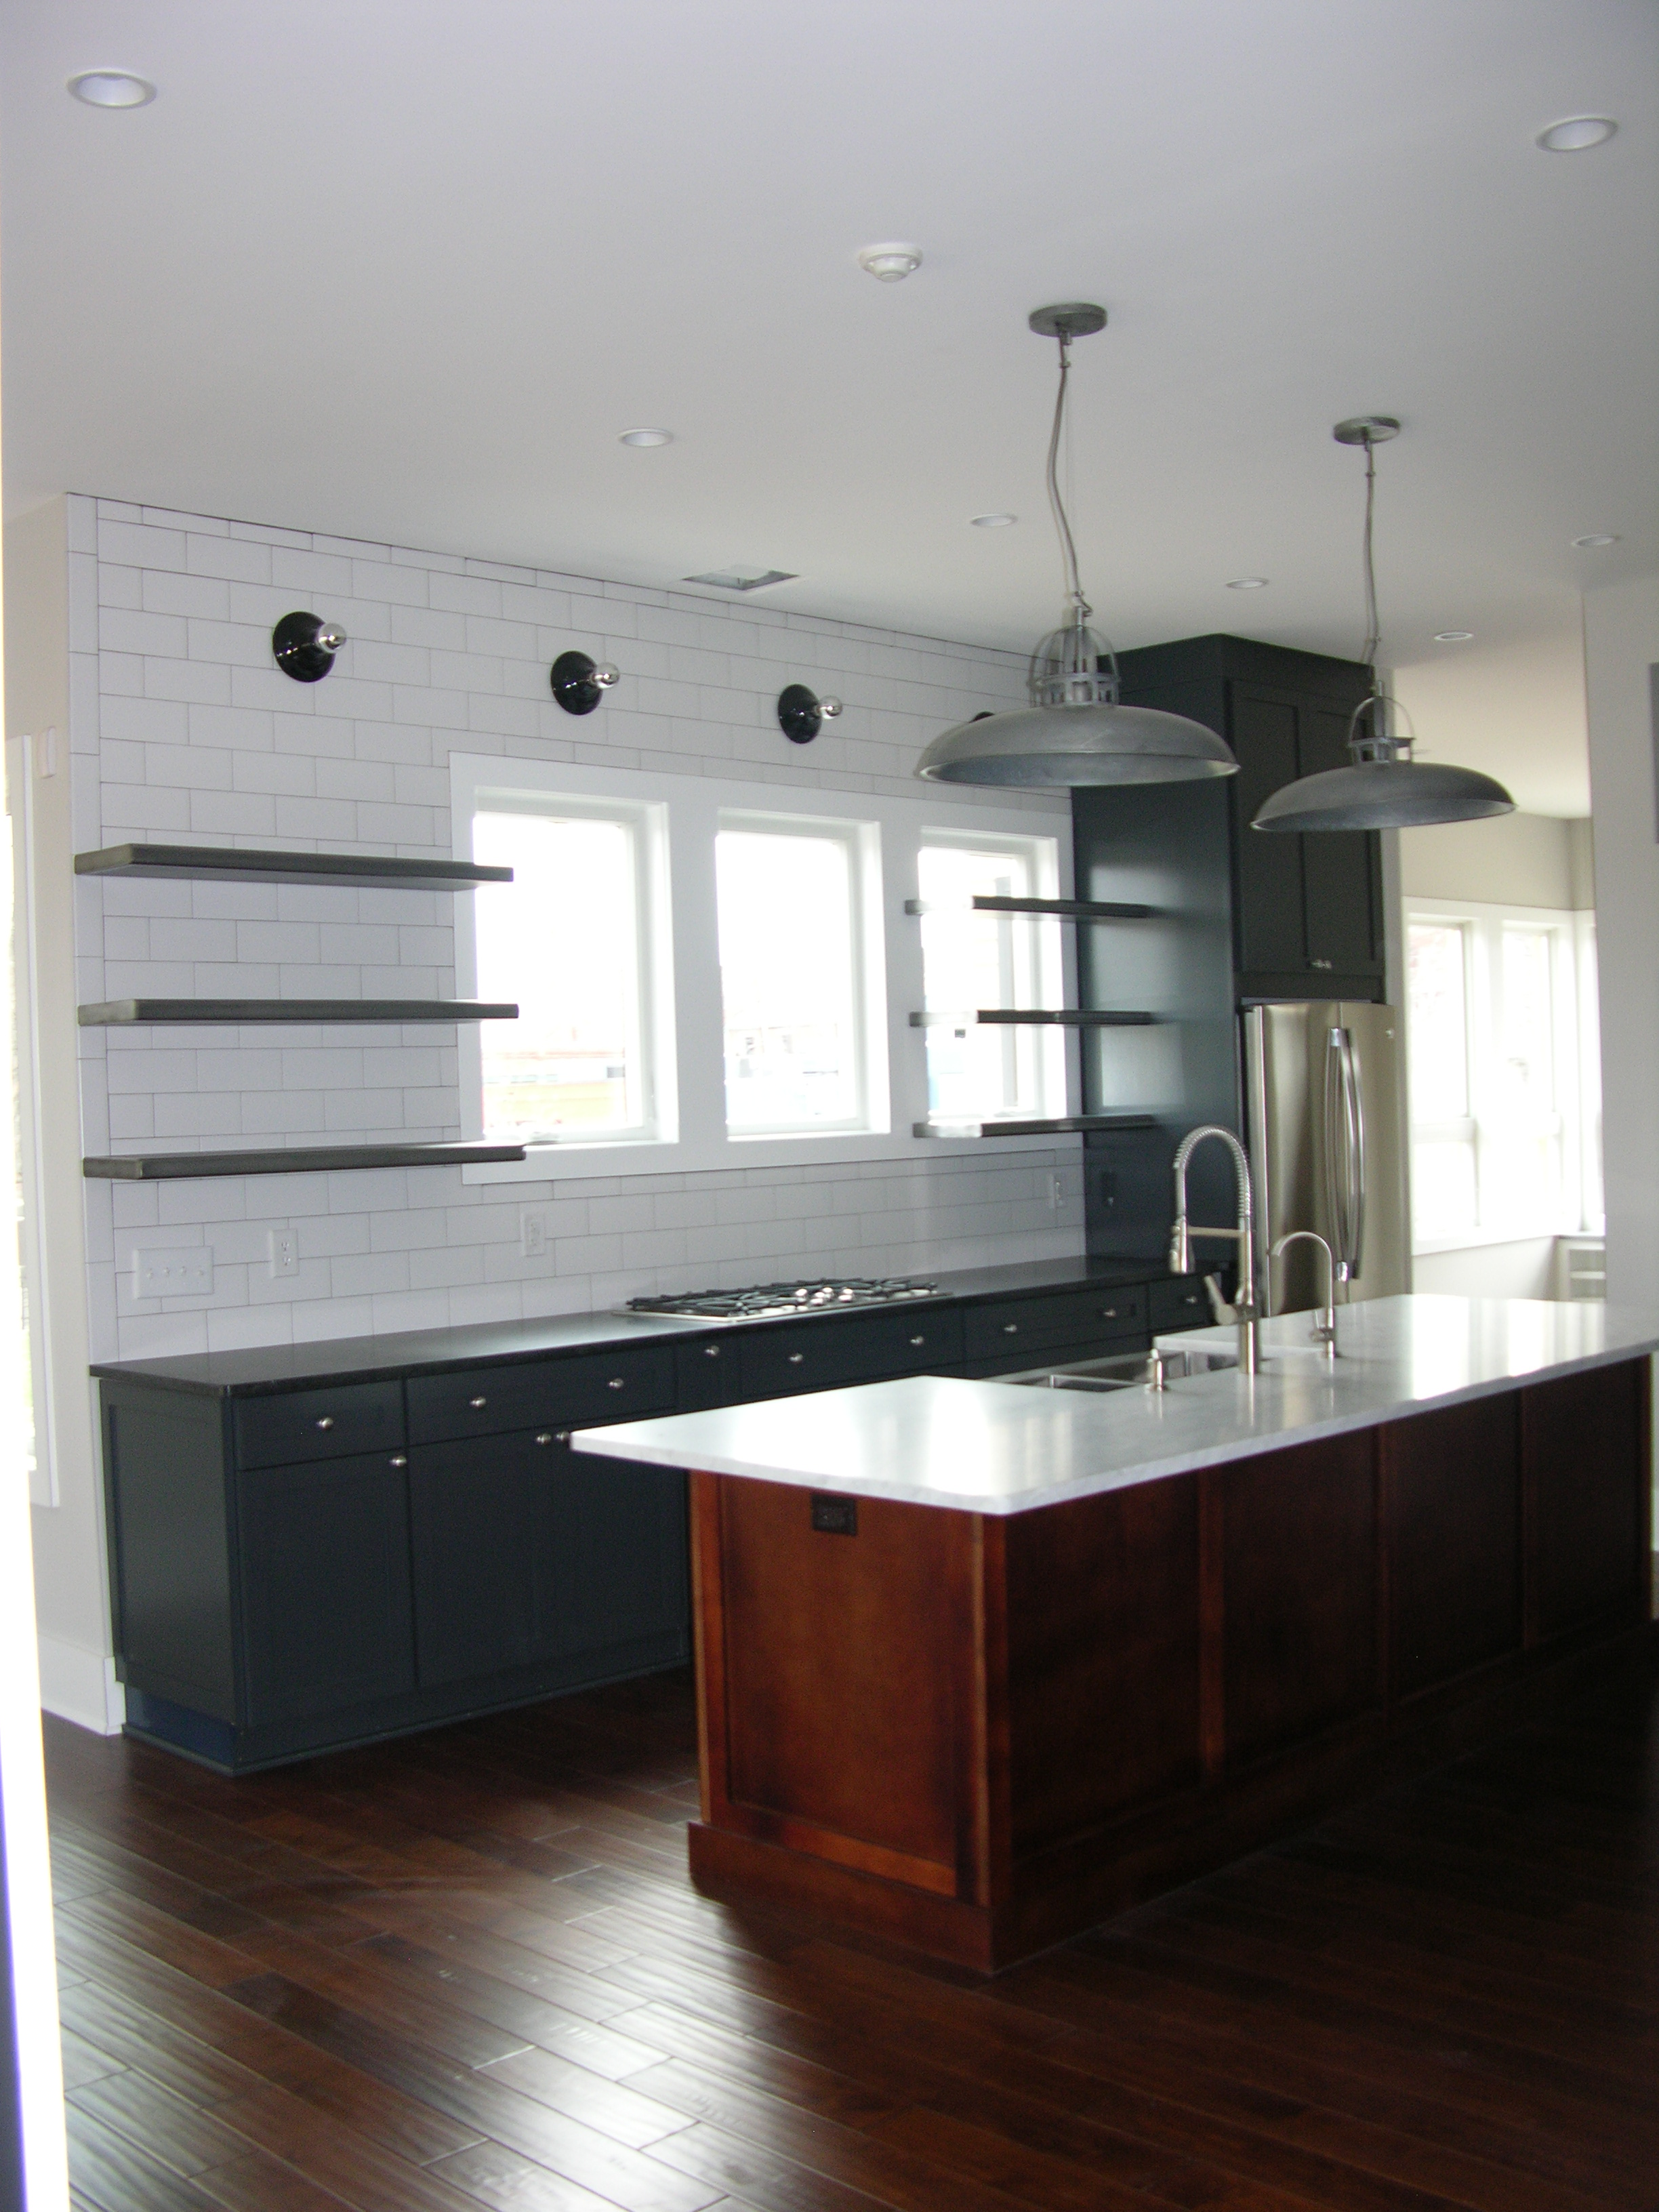 Modern Style Kitchen Quartz Granite Kitchens  Indianapolis Granite Countertops By Majestic Stone Imports